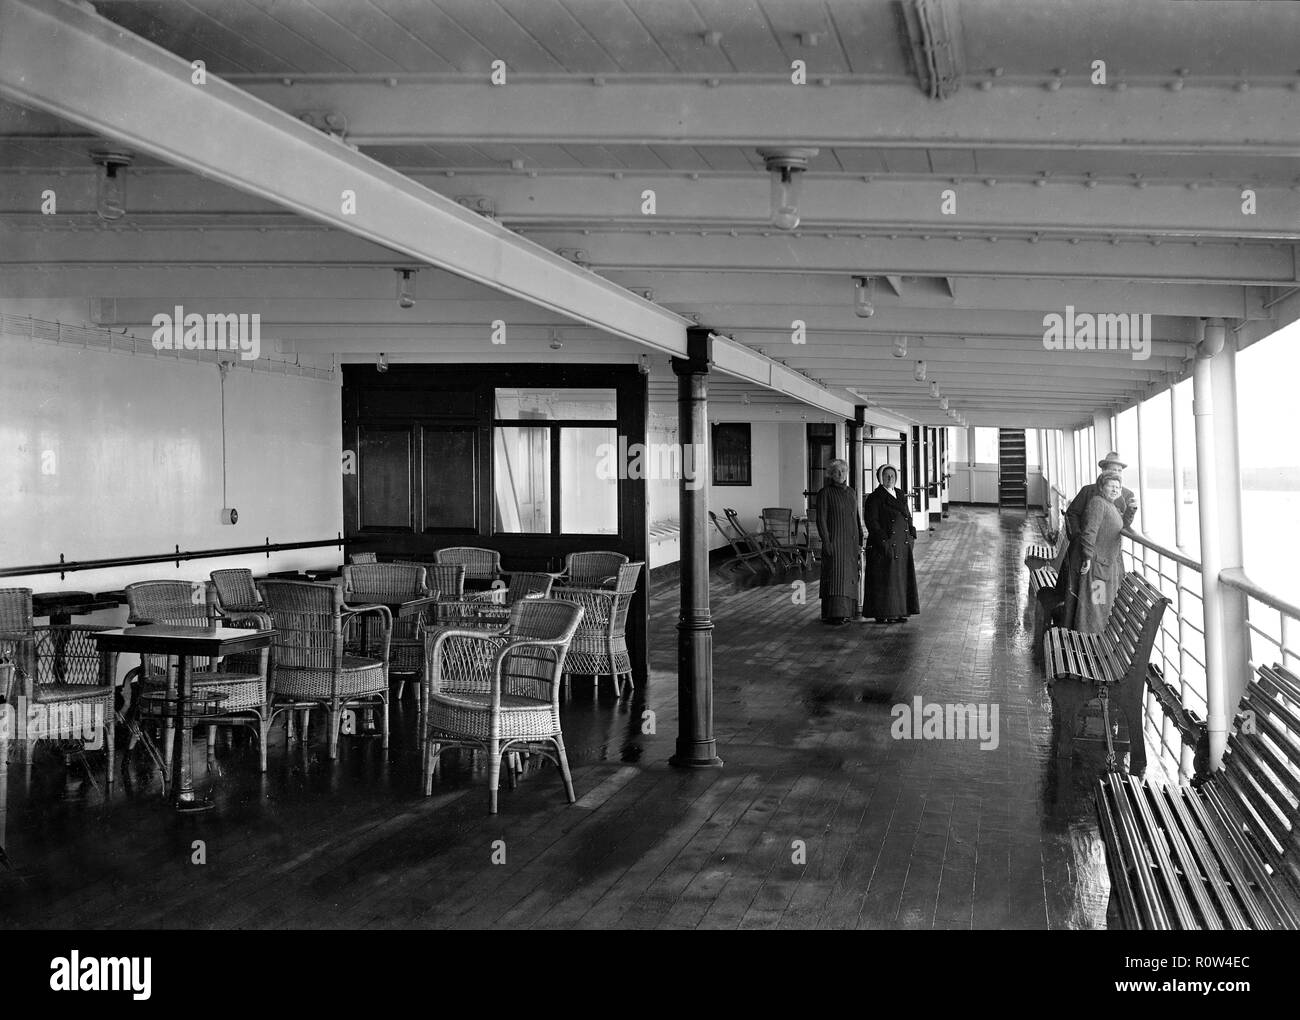 Promenade deck on 'SS Insulinde', 1914. The Dutch steam ship 'SS Insulinde' was built in 1914 for the Rotterdam Lloyd company and served as a passenger freight ship between Rotterdam and Jakarta. She was laid up during WWI and sold to the Fabre Lines of Marseilles in 1933. Renamed 'Banfora', she ran routes from Marseilles to West Africa. In WWII she served as a British troop and supply transport. - Stock Image